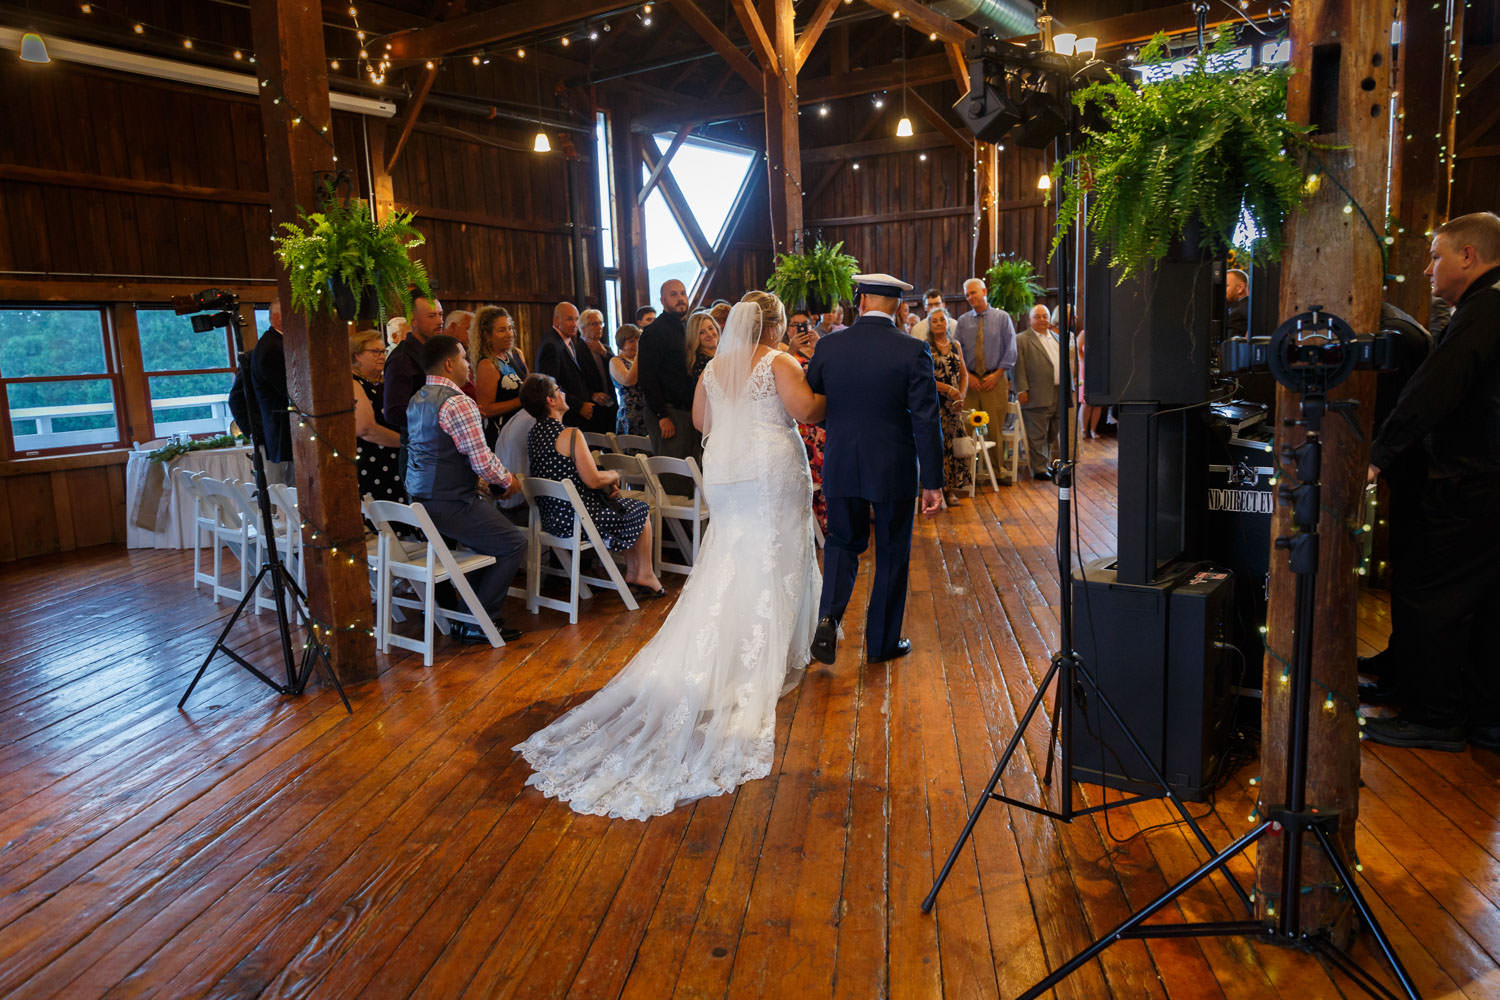 Bride during recessional with father during indoor ceremony